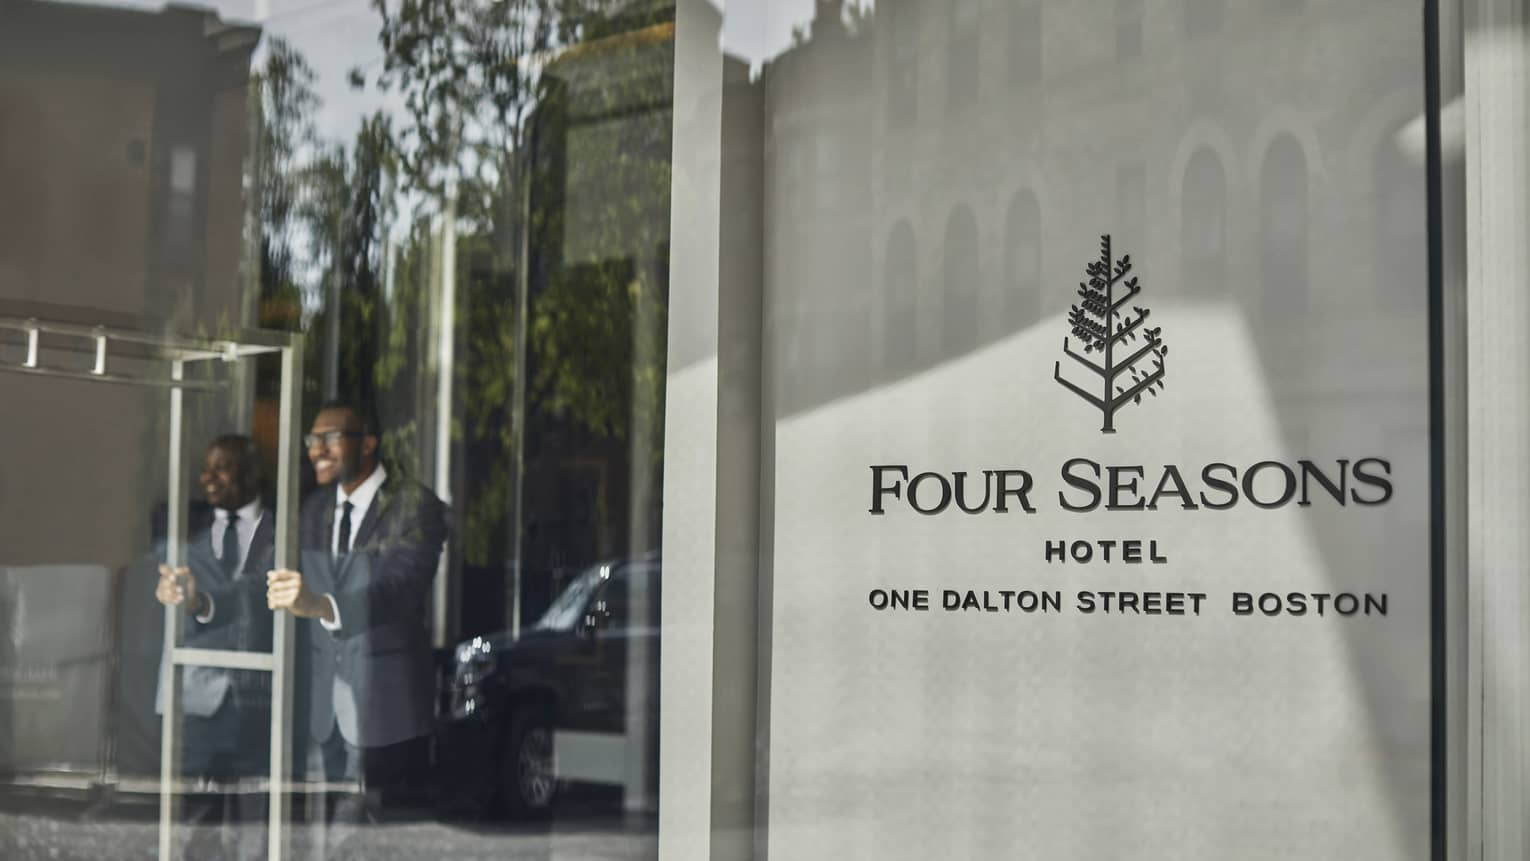 Four Seasons staff open the entrance door for guests